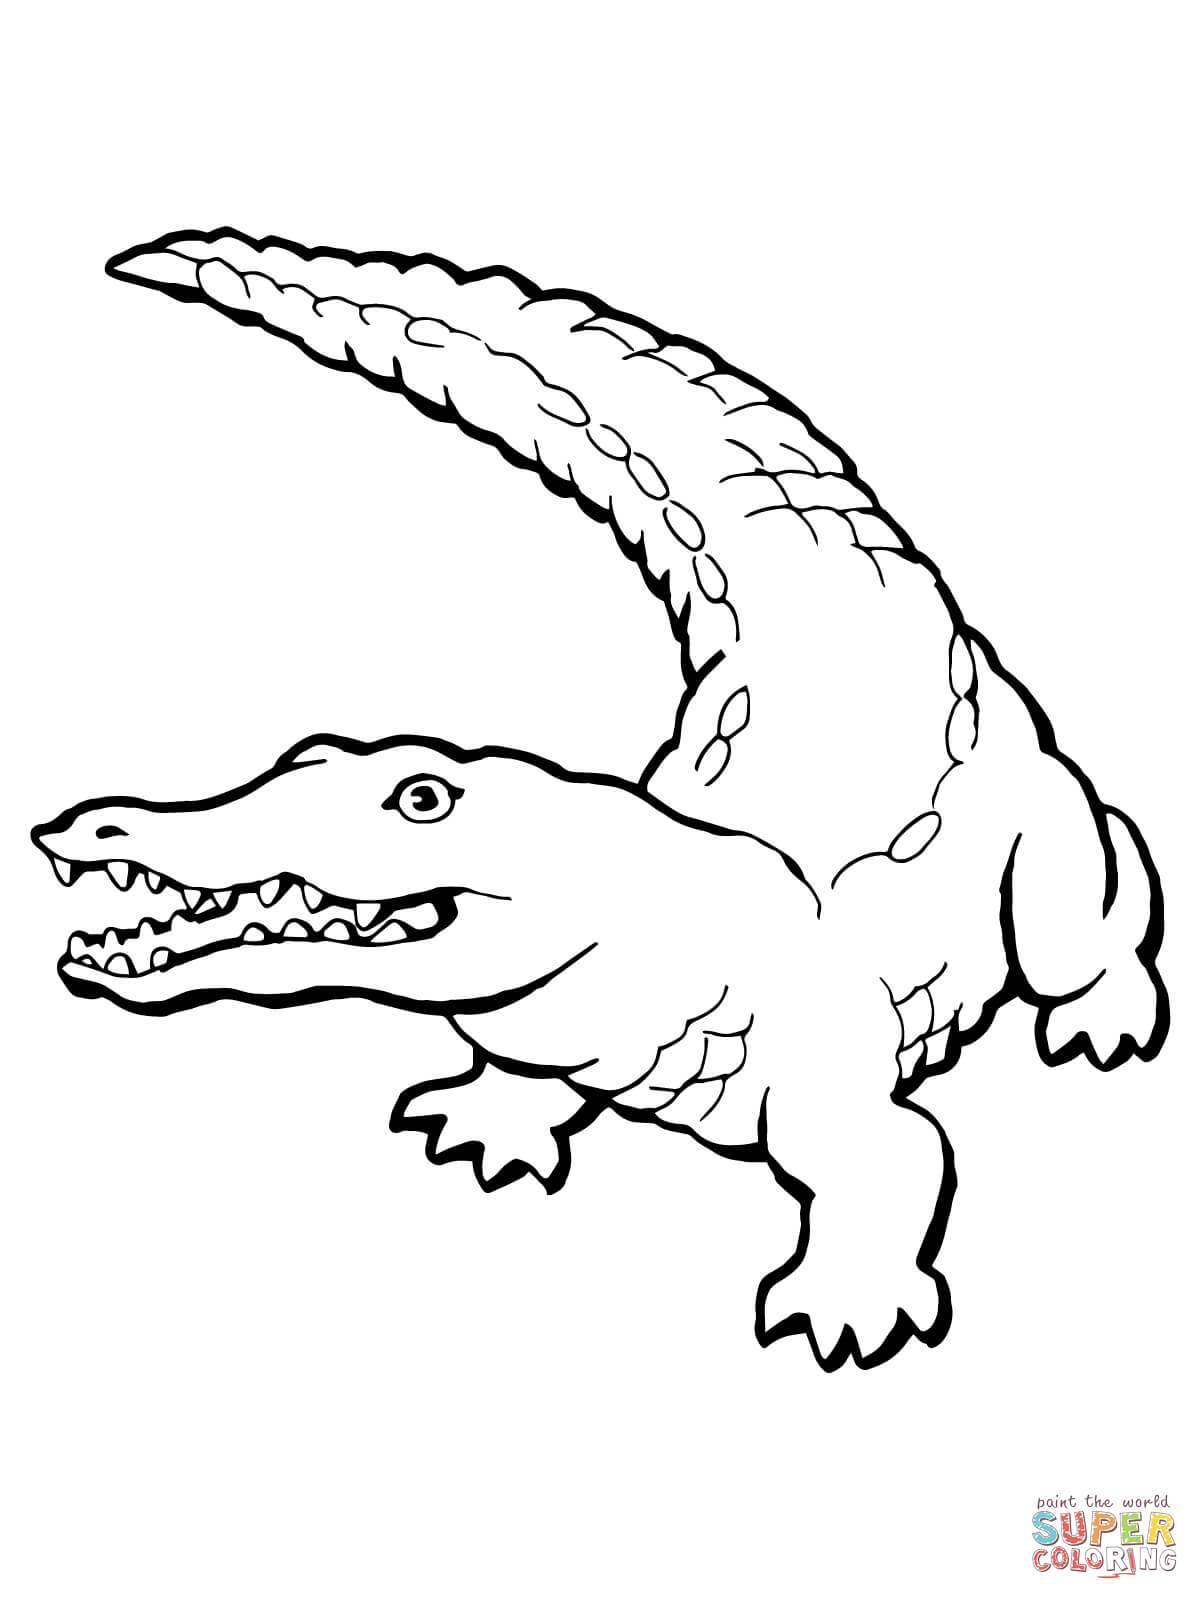 Crocodile Coloring Pages Realistic Page Free Printable 1200×1600 - Free Printable Pictures Of Crocodiles